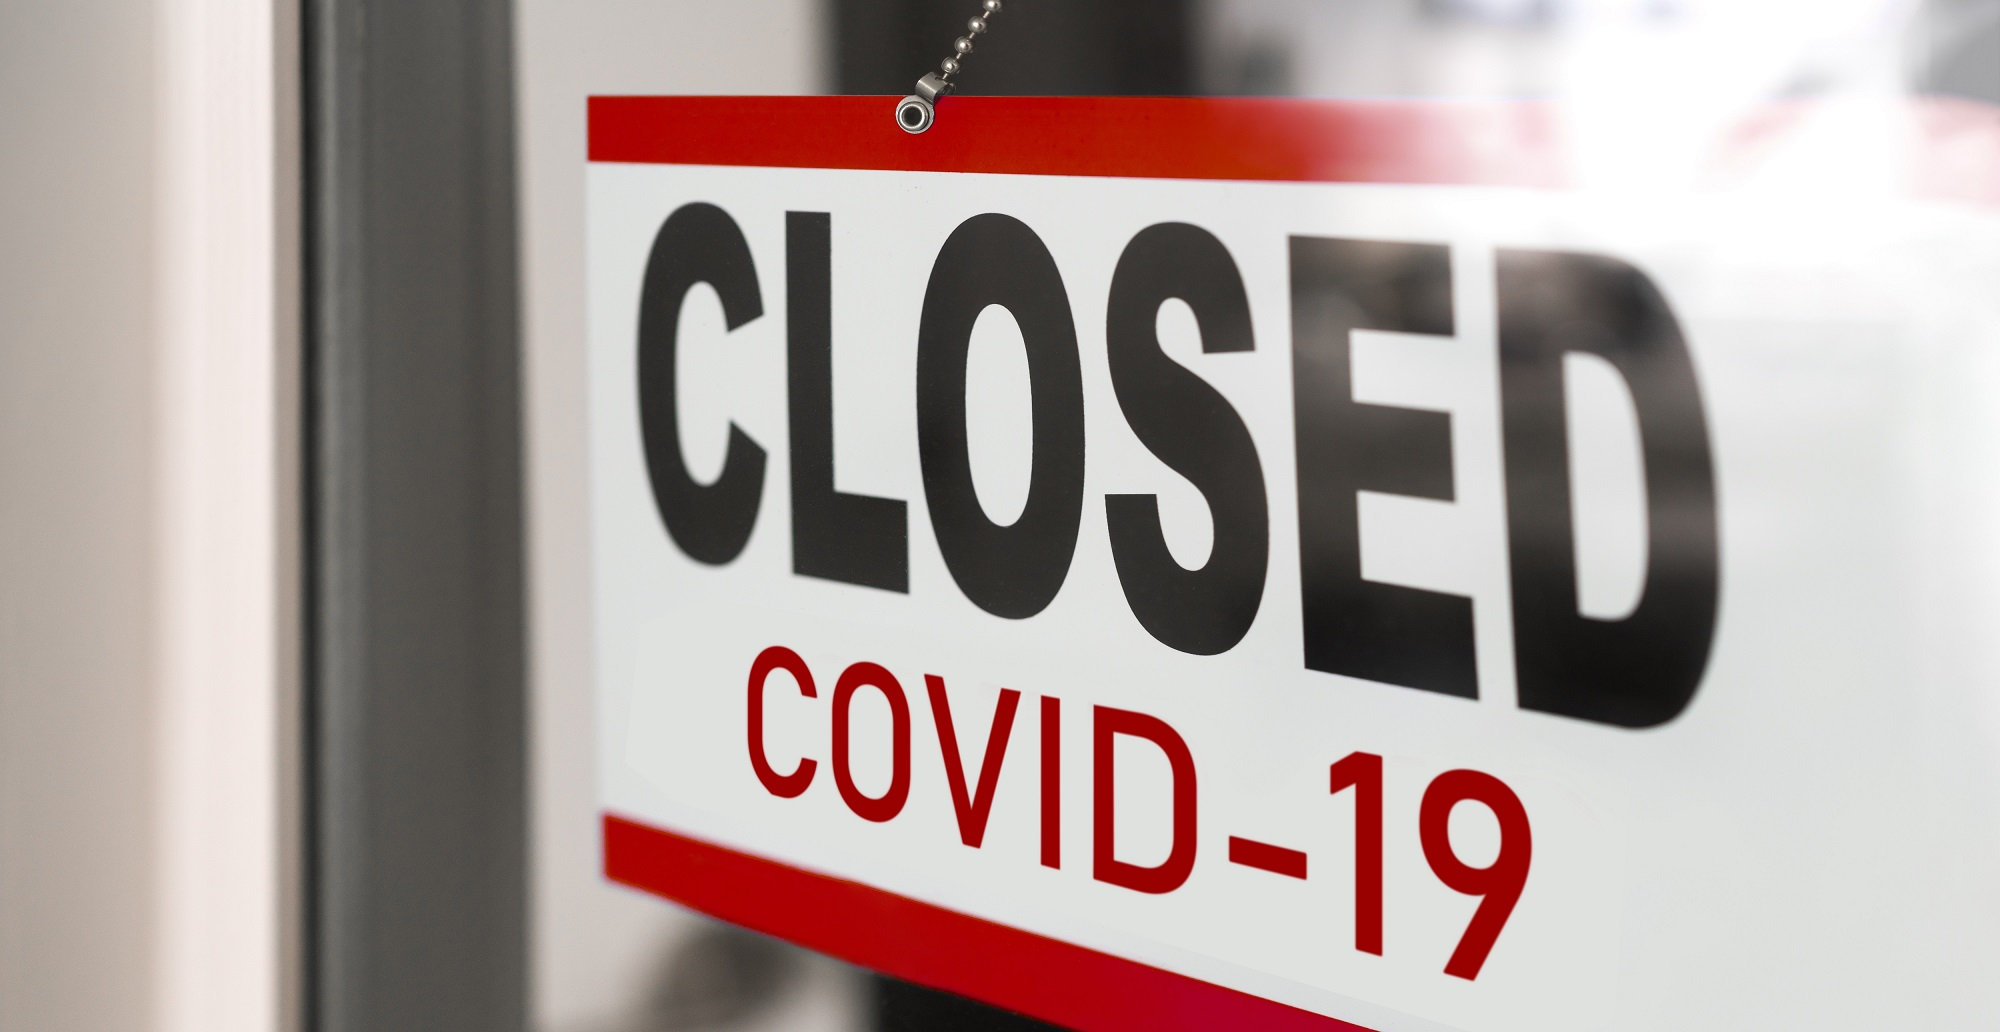 Business closed by COVID-19